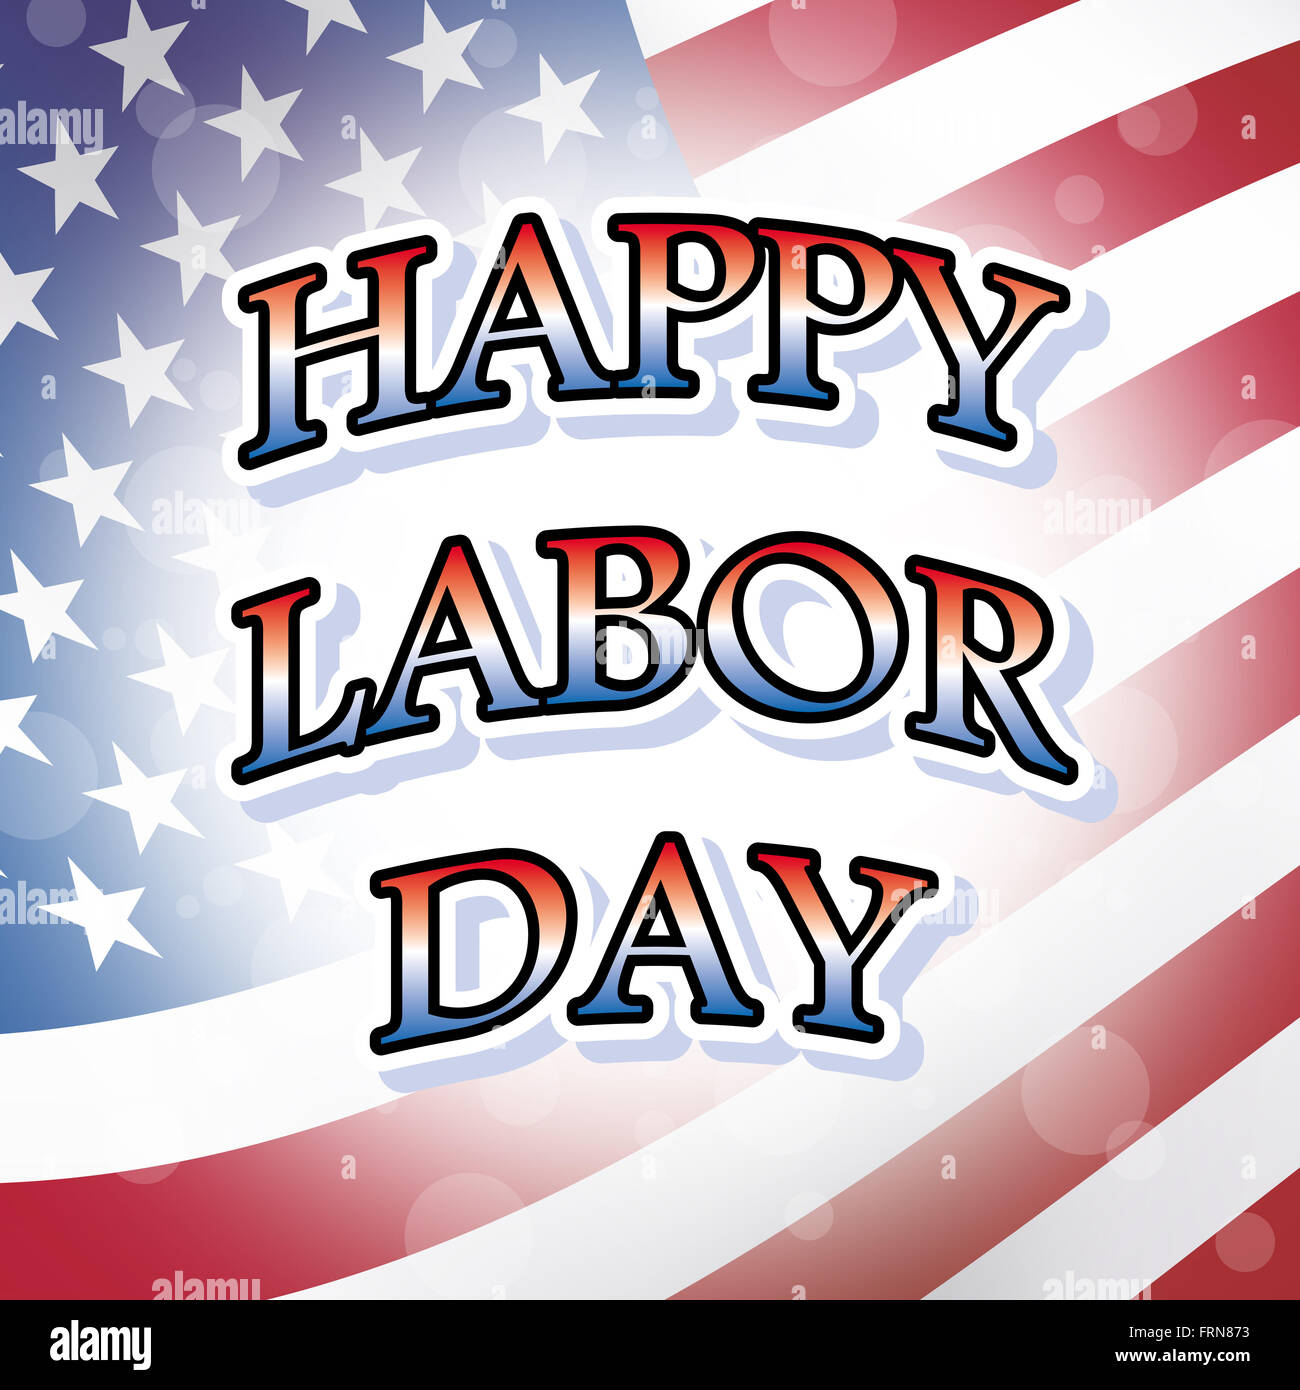 Happy labor day stock photos happy labor day stock images alamy happy labor day usa greeting card with american flag background stock image m4hsunfo